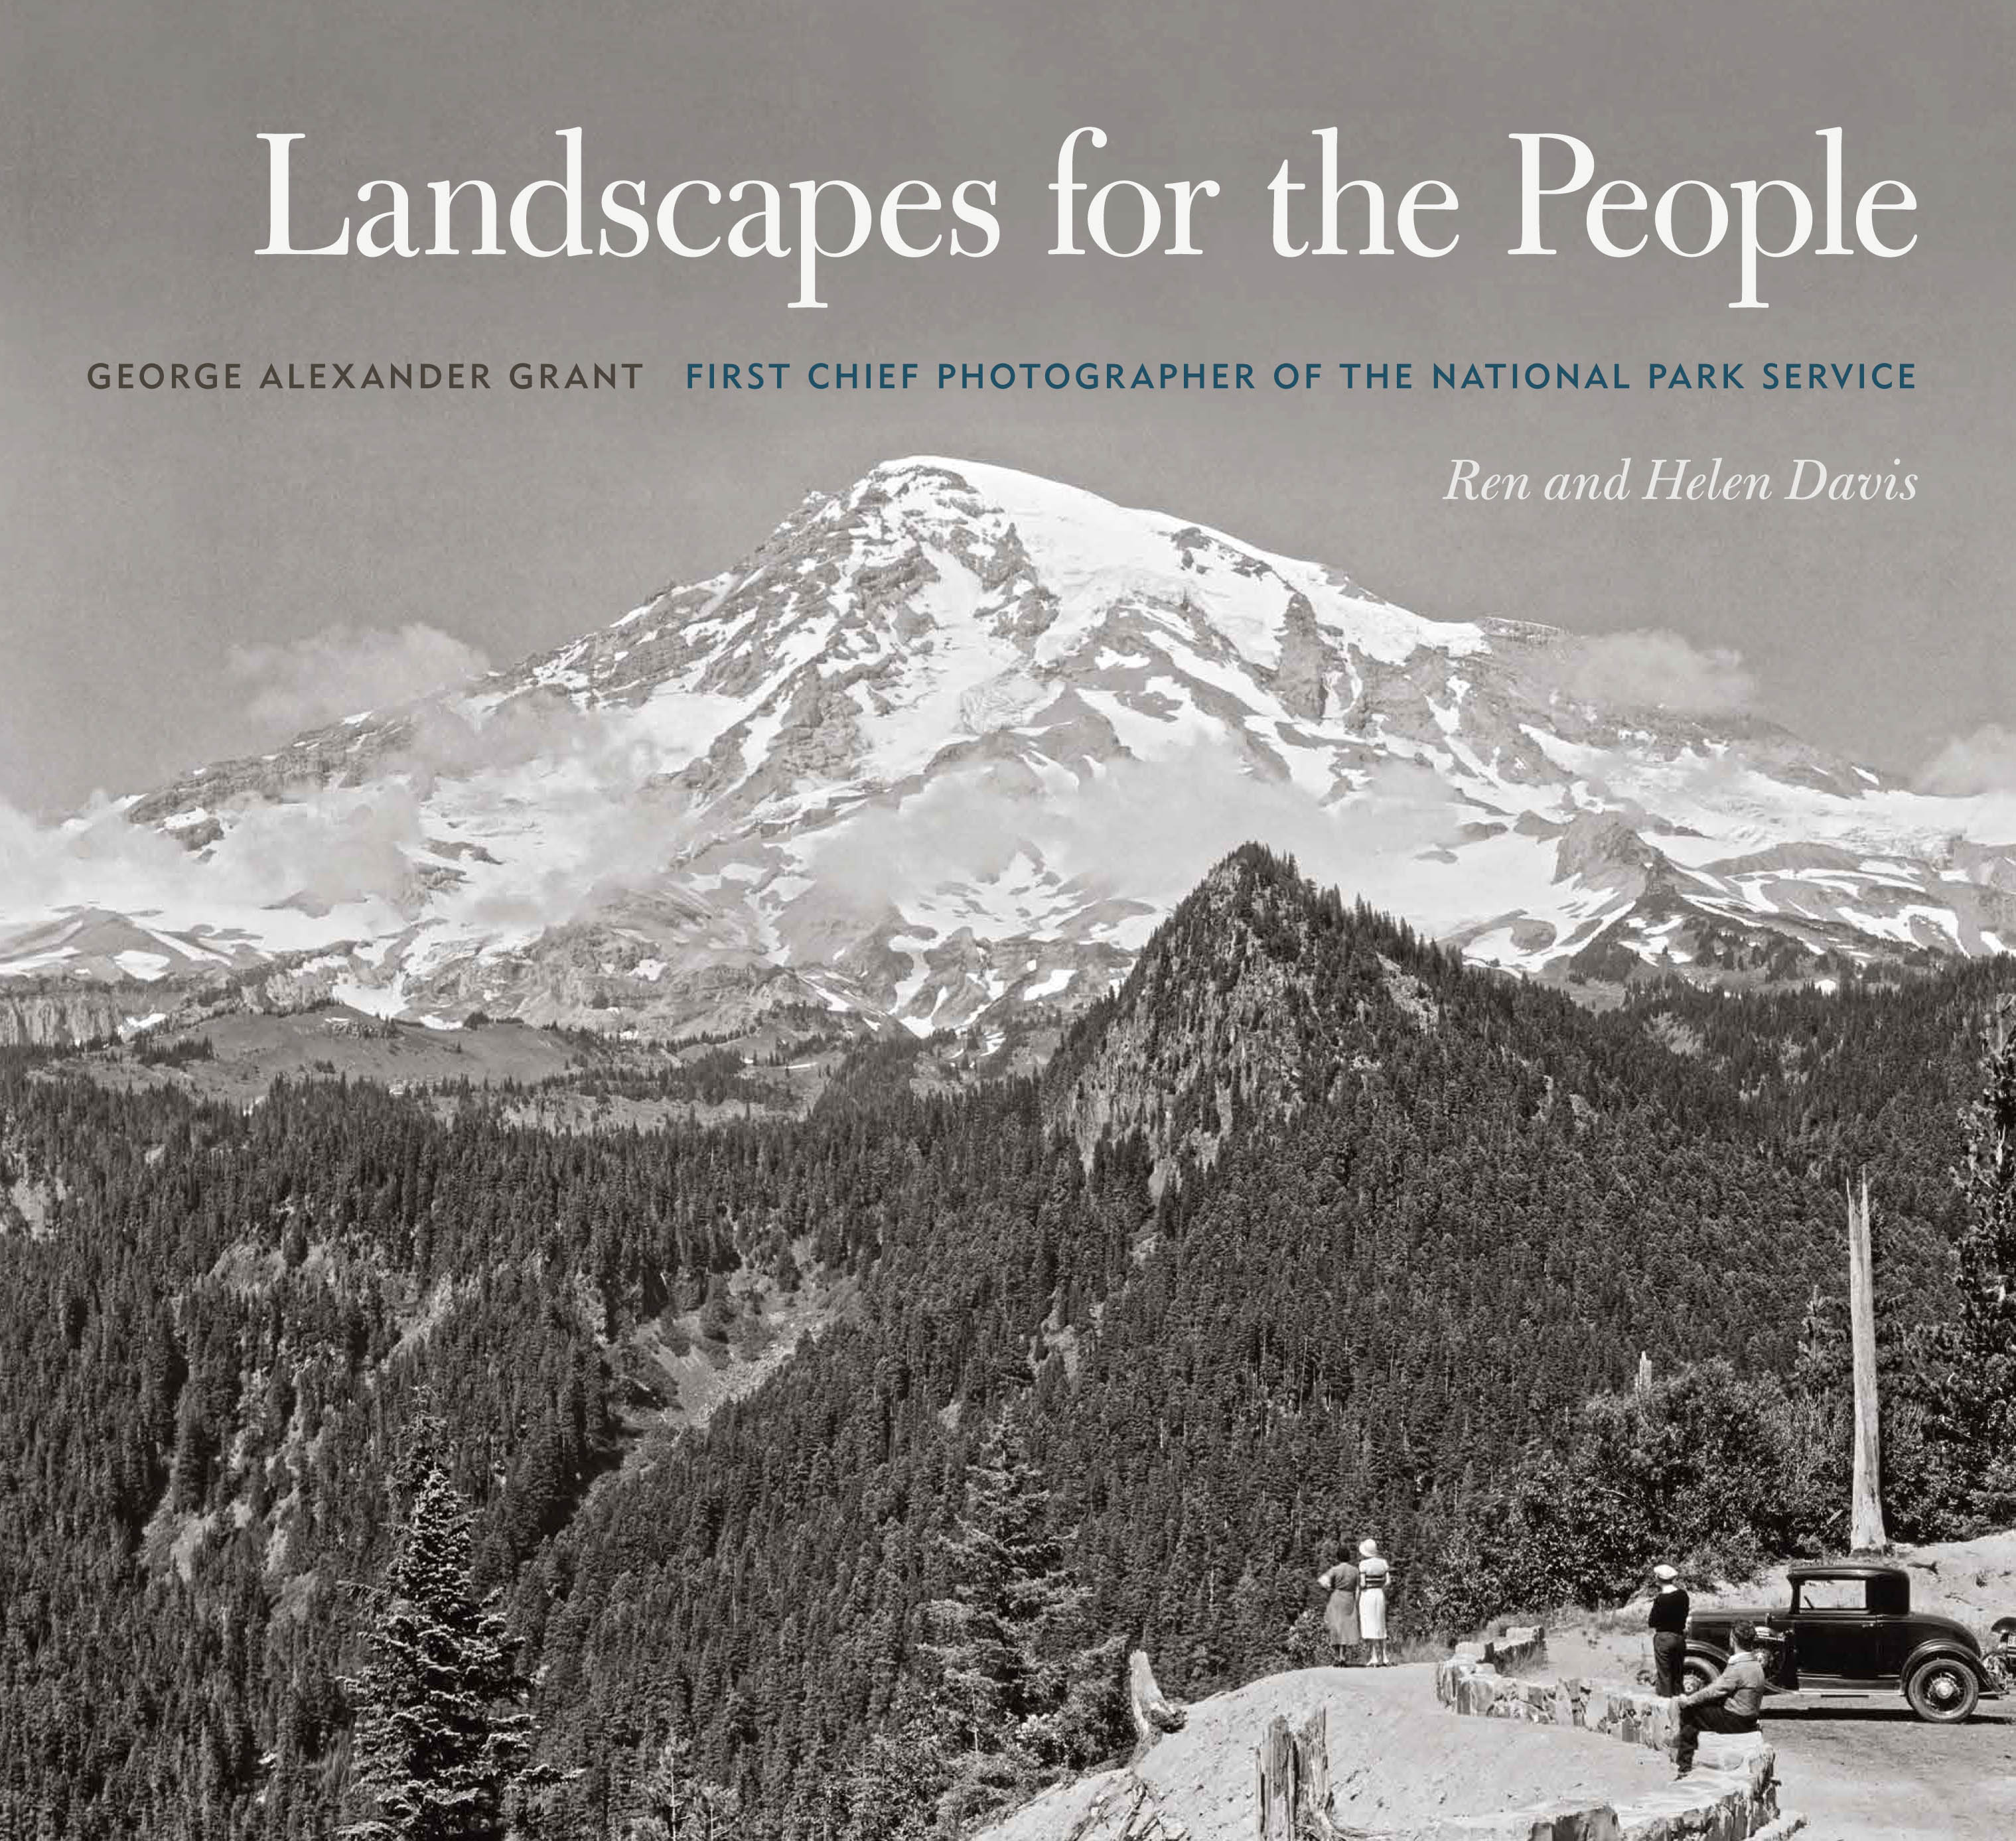 Cover Photograph of Ren and Helen Davis' book Landscapes for the People about George A. Grant, Chiefe Photographer of the National Park Service